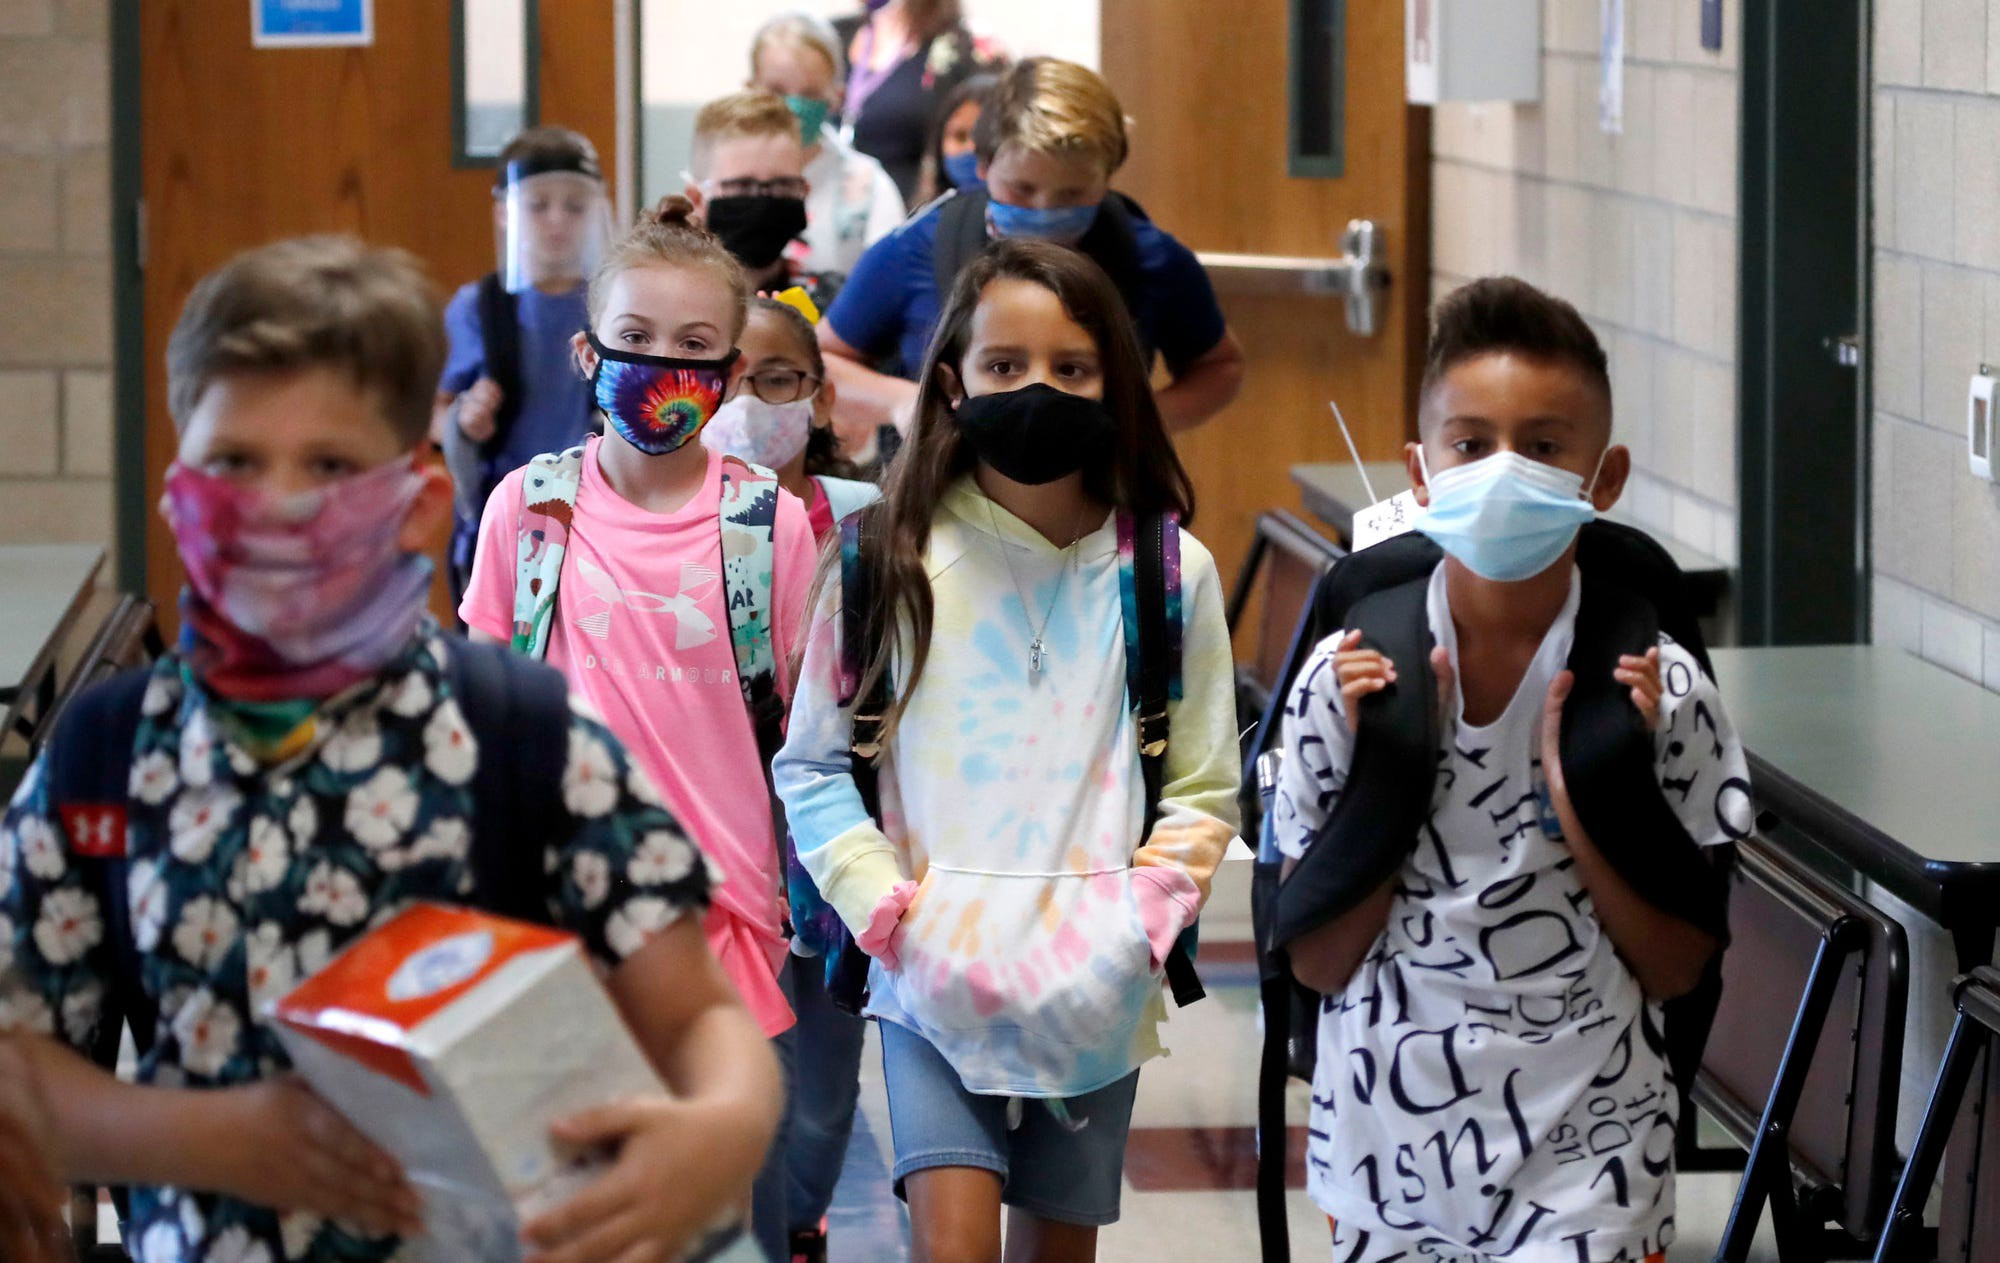 Elementary-school students walk to classes in Godley, Texas, on August 5.